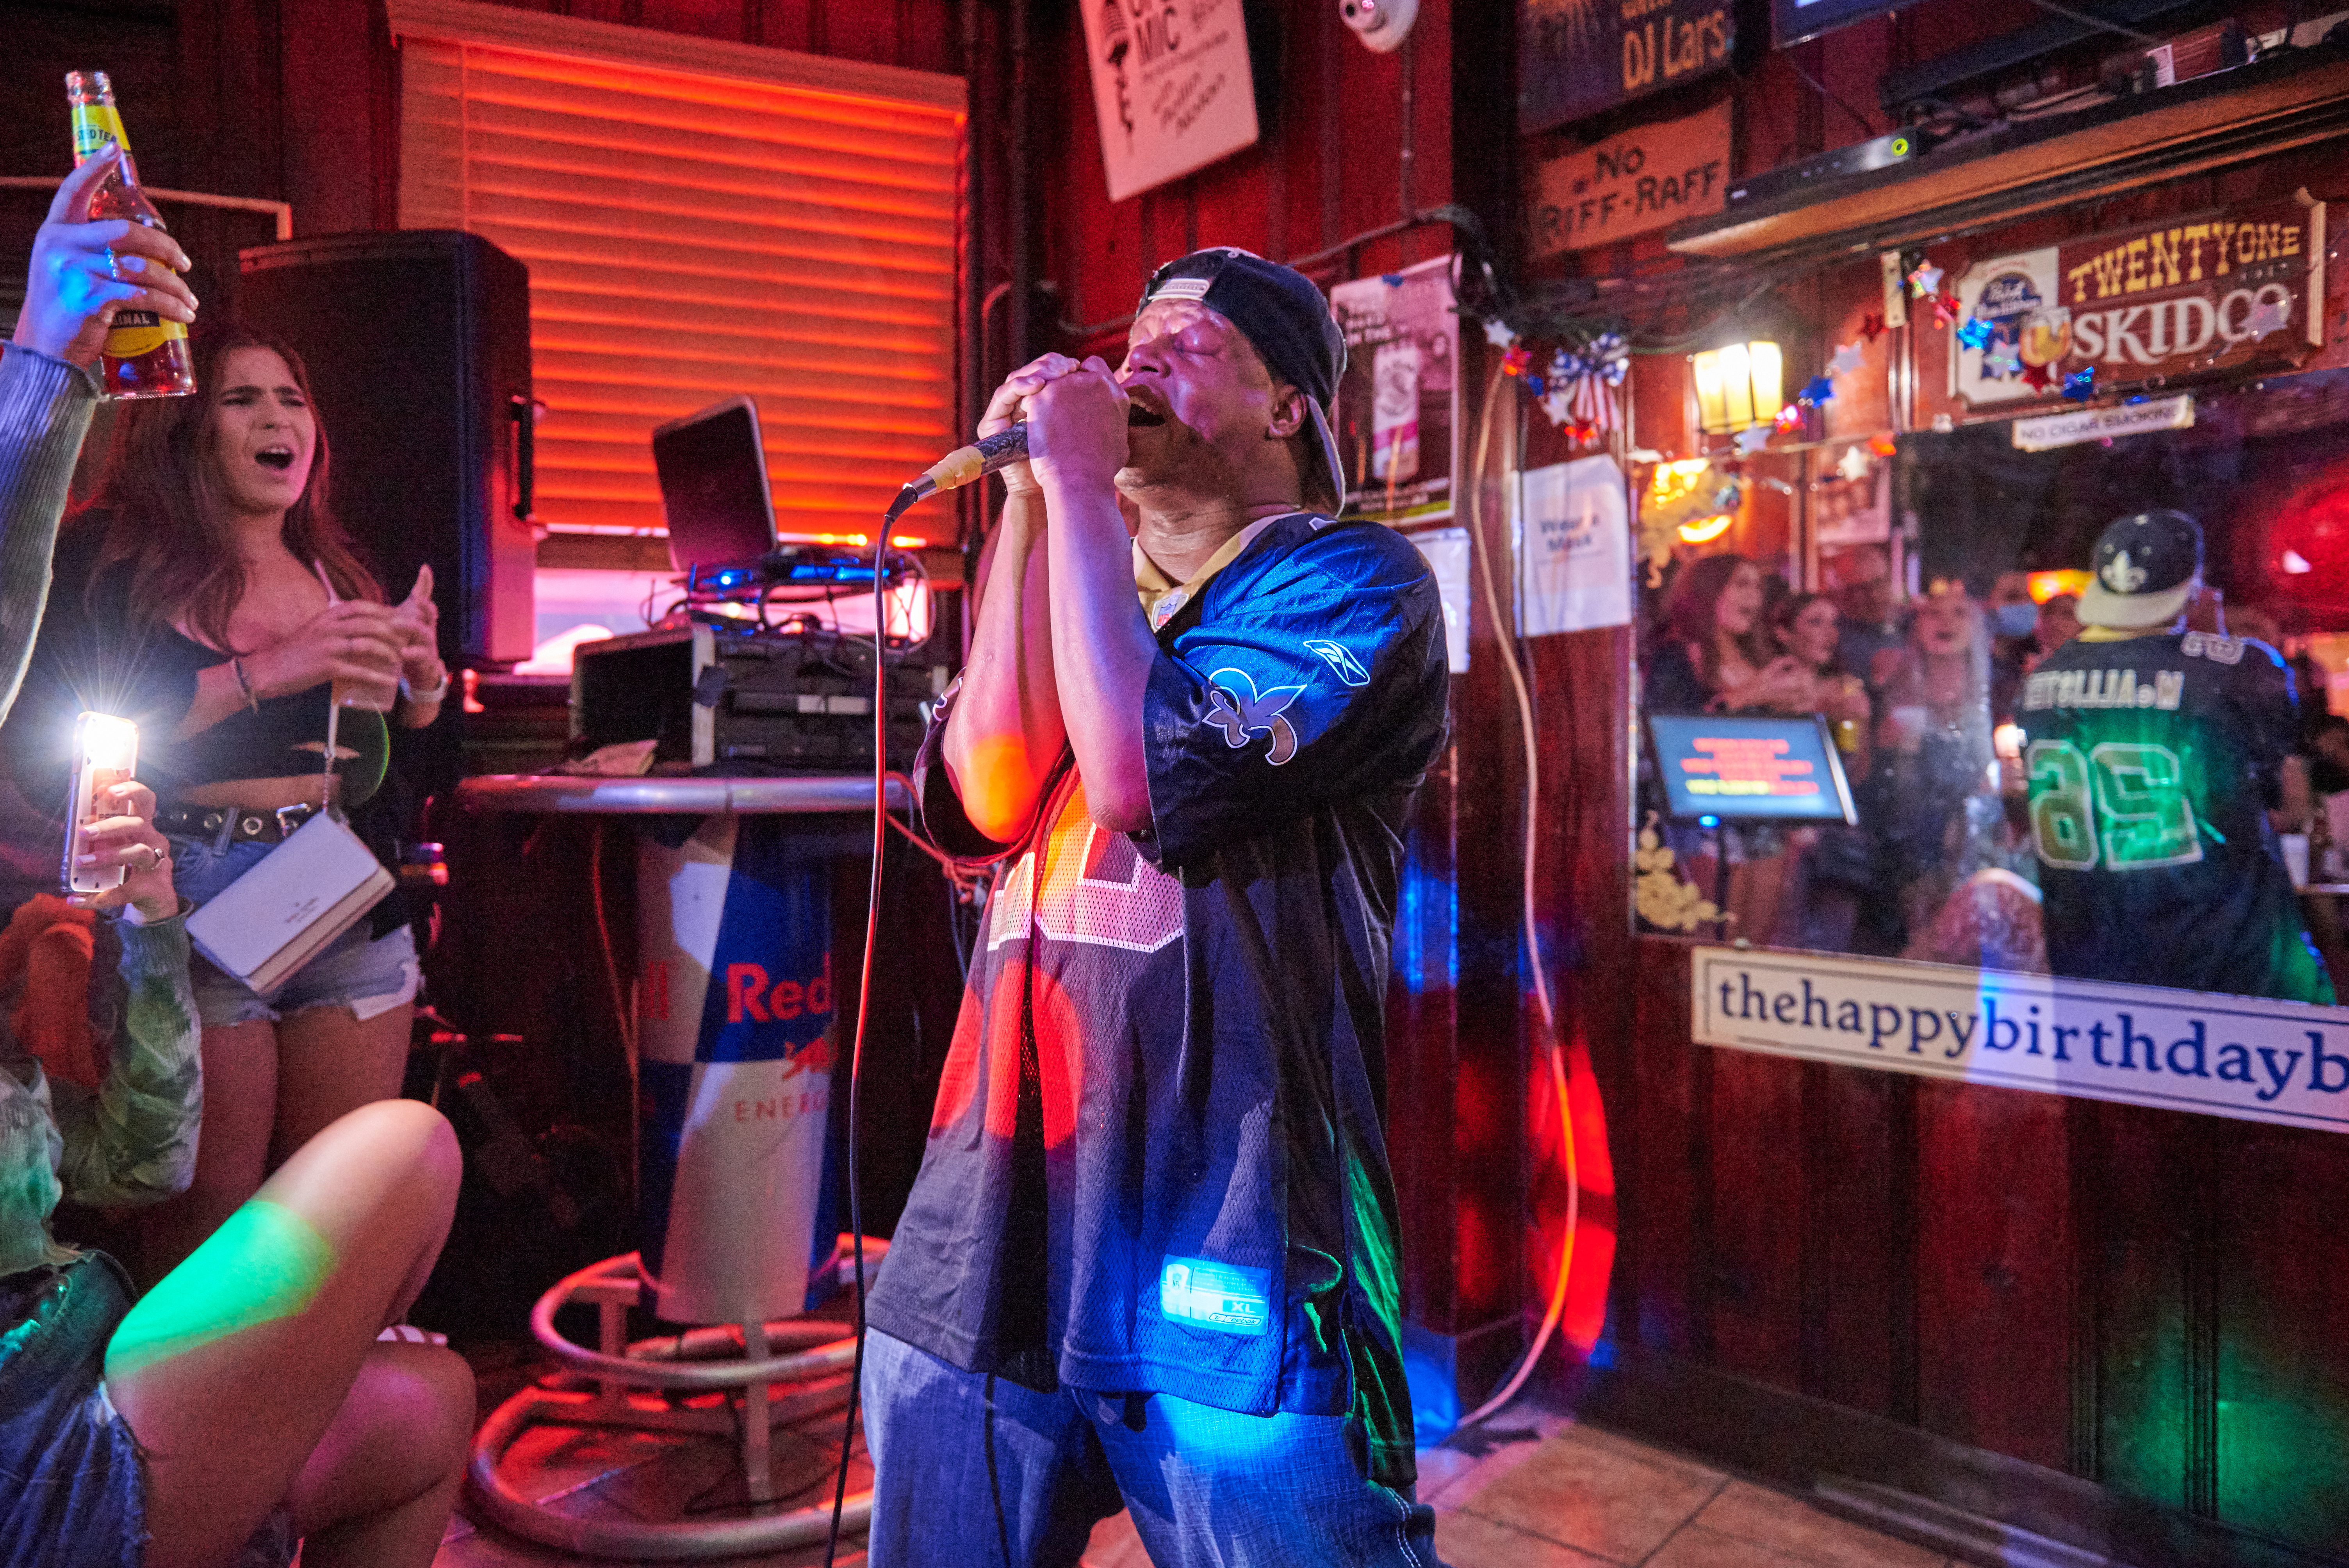 """Metal Steve sings Coldplay's """"Yellow"""" at Ray's Happy Birthday Bar Friday Karaoke with DJ Lars as a crowd of people sing along"""